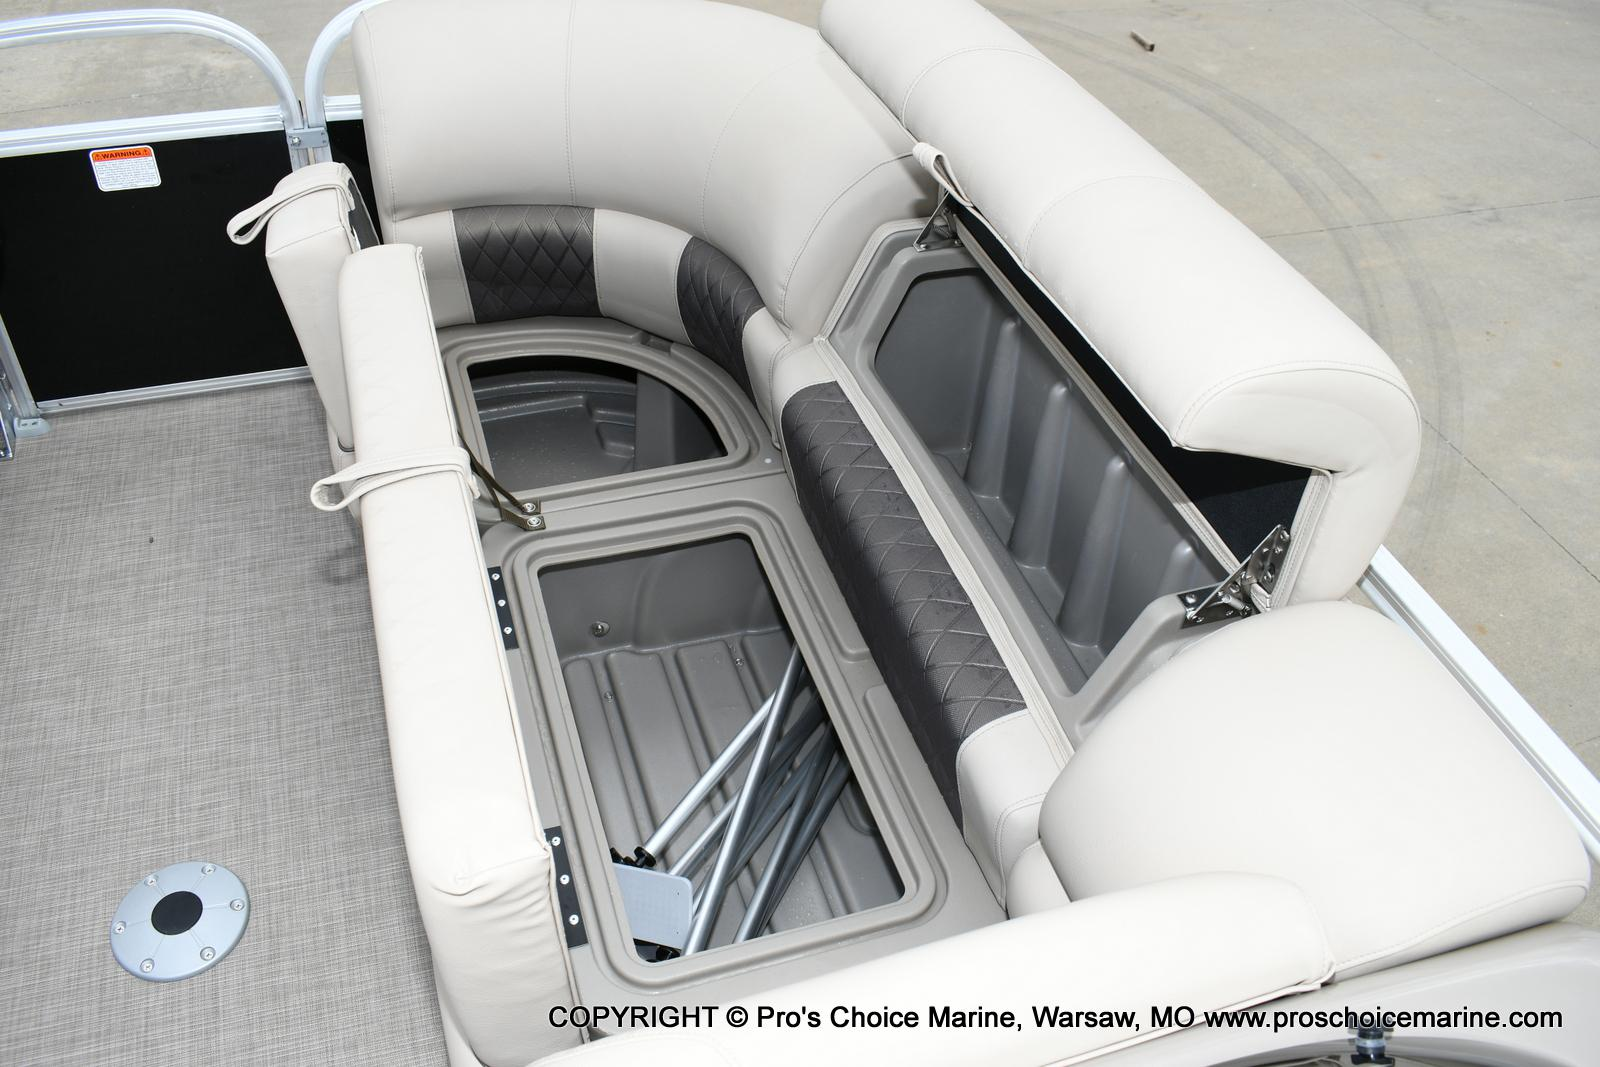 2020 Sun Tracker boat for sale, model of the boat is Party Barge 22 DLX & Image # 30 of 50